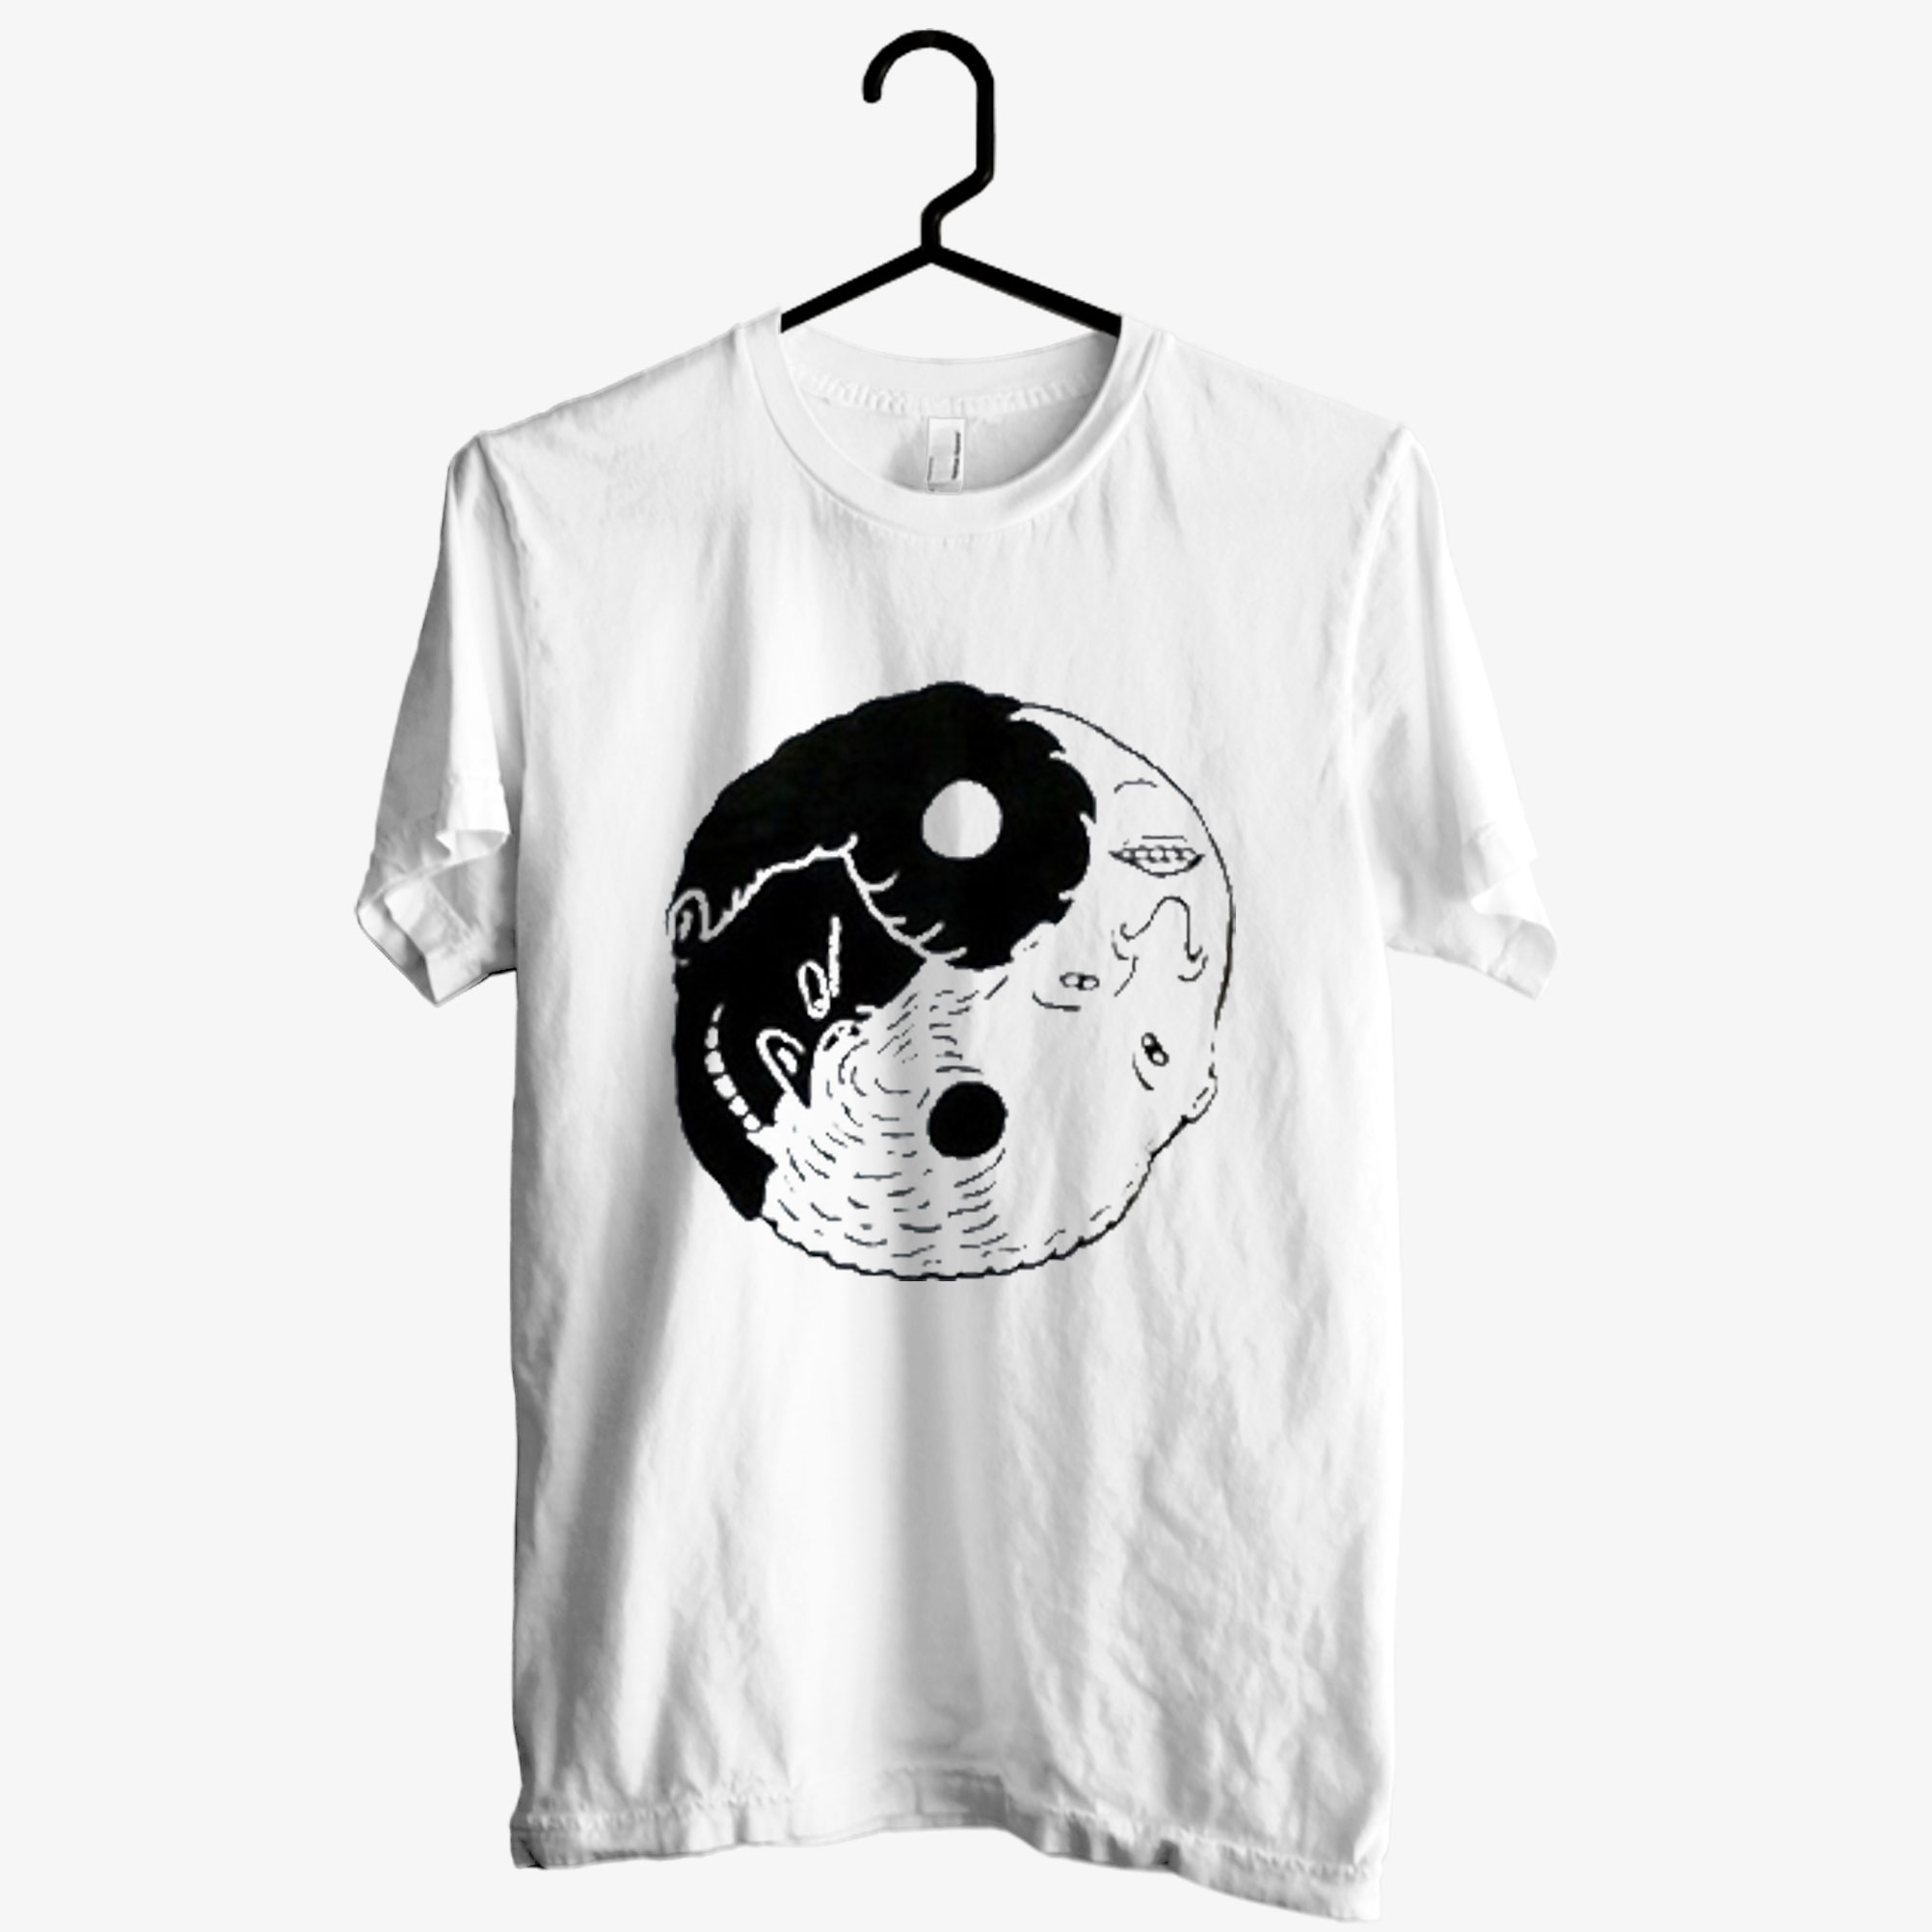 Beavis and Butt-Head Yin Yang T shirt